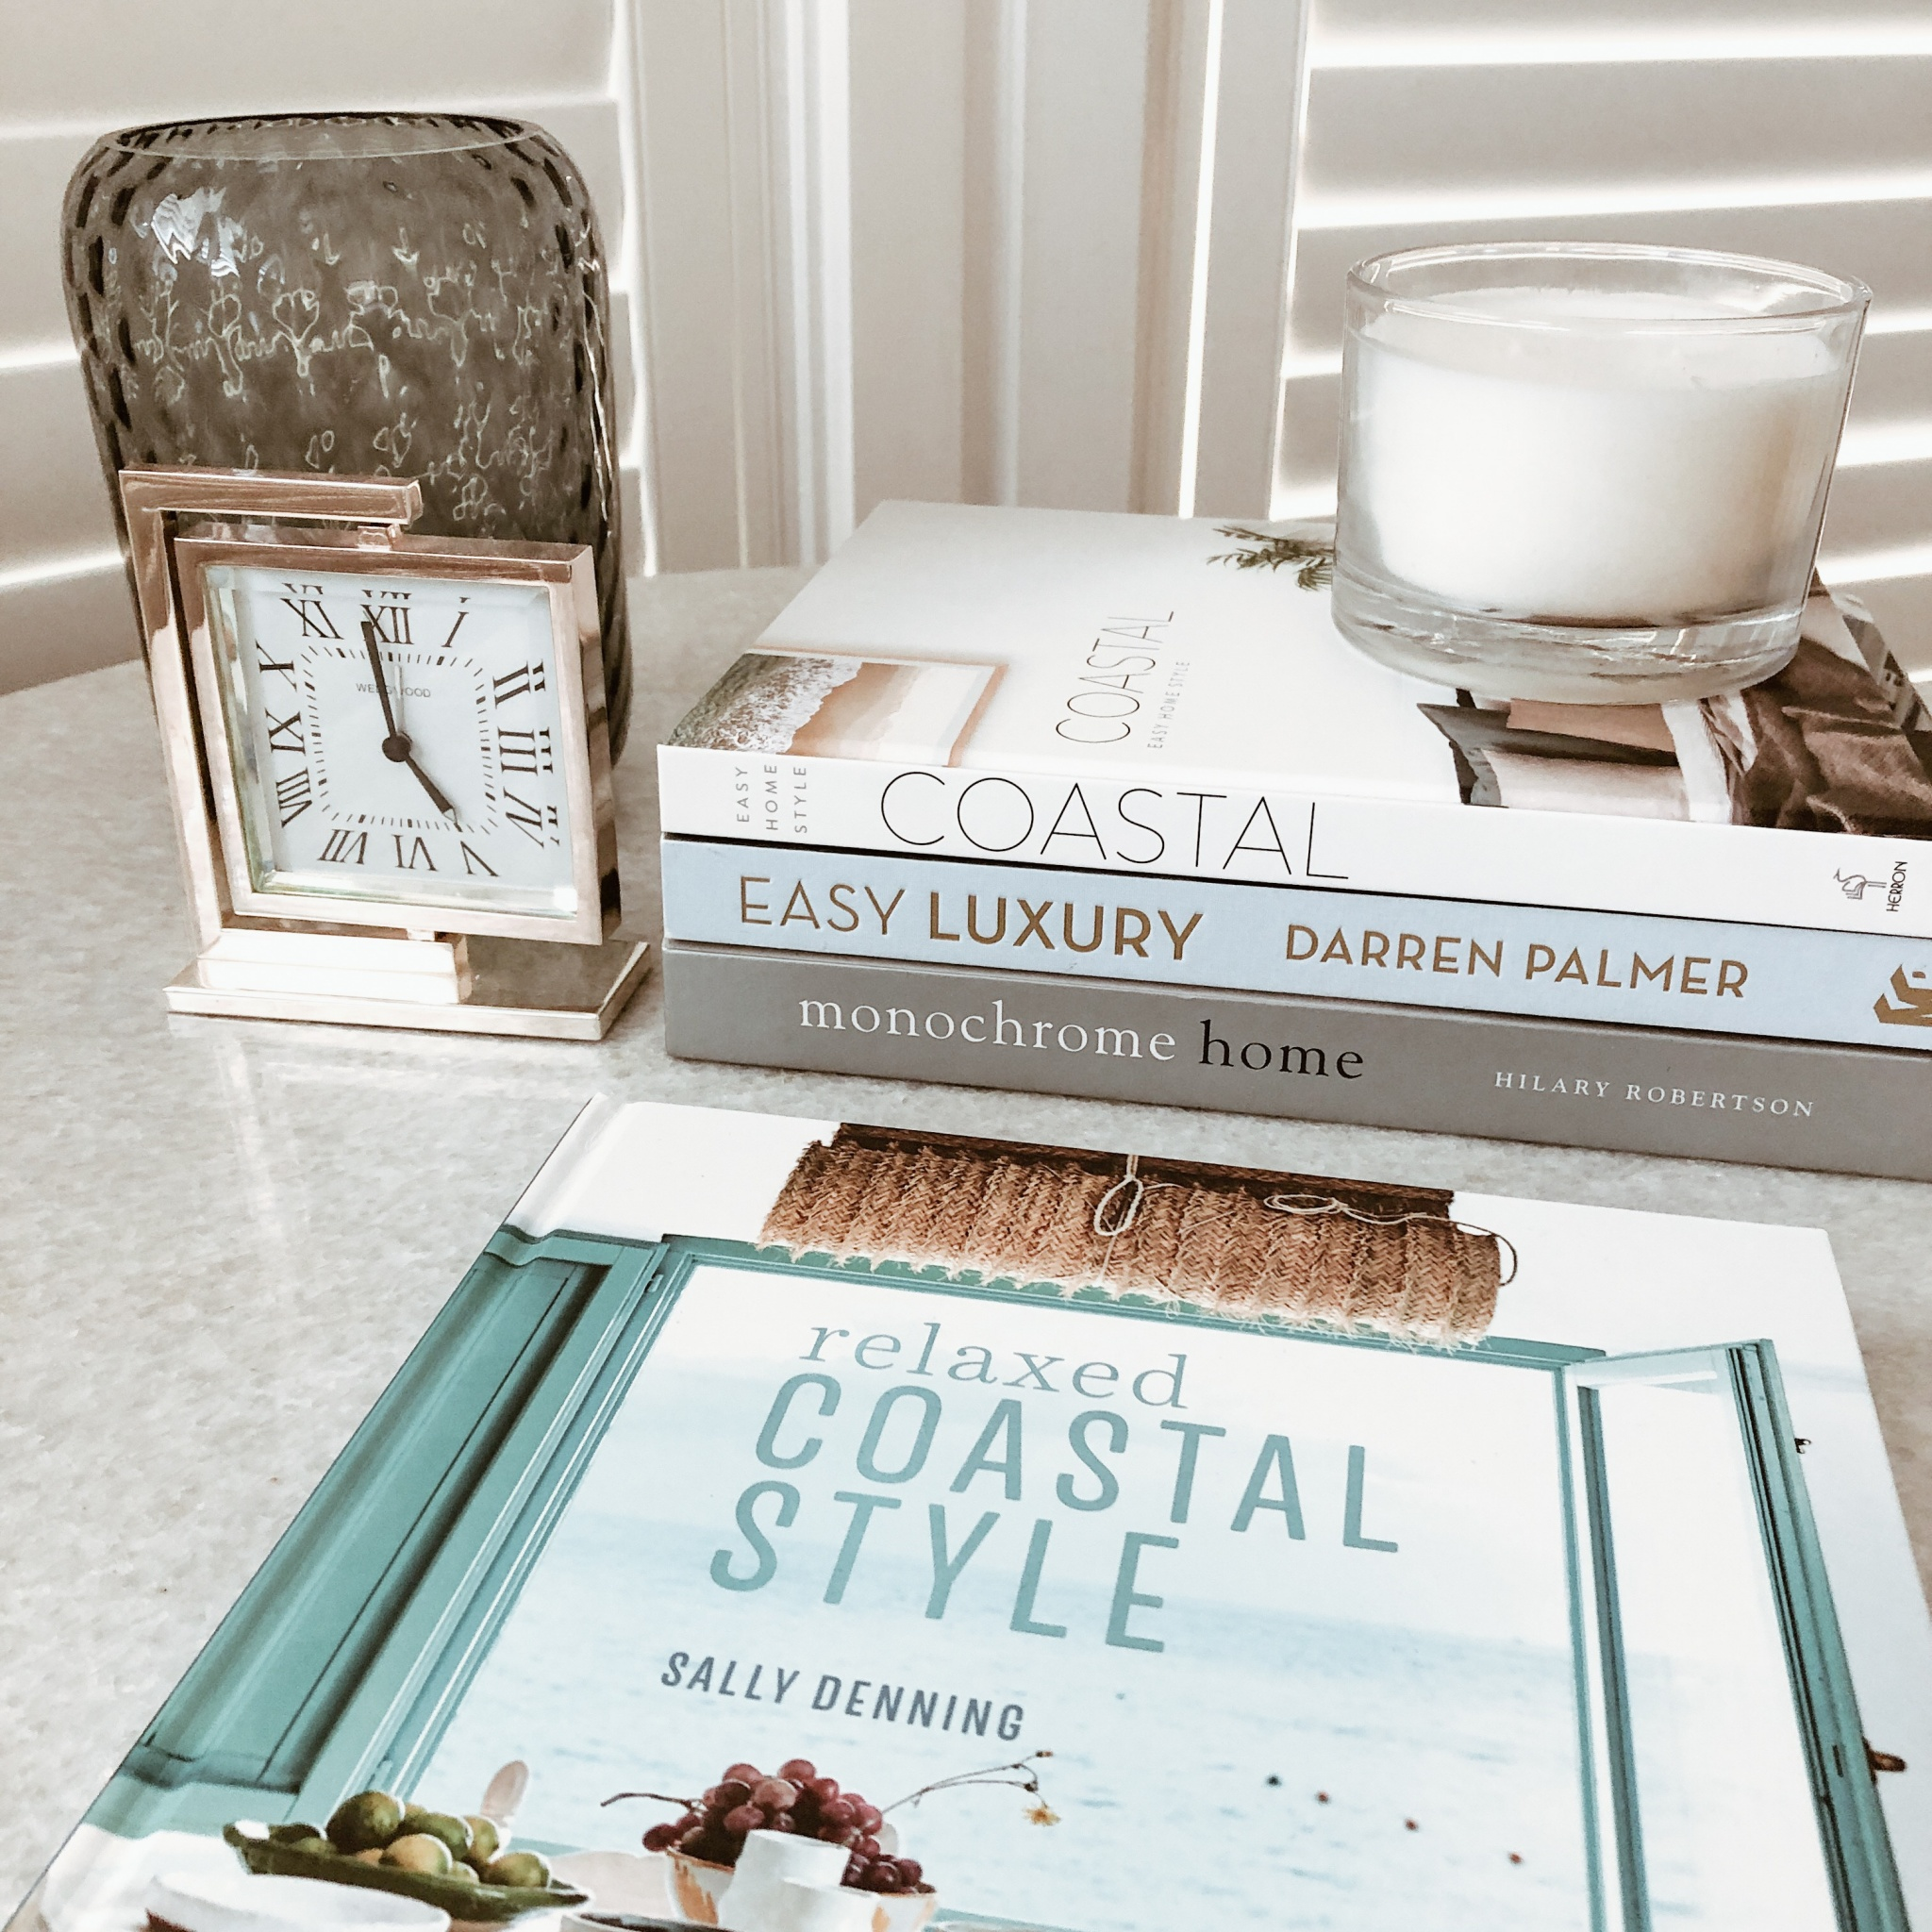 Top 6 Interior Books for your home